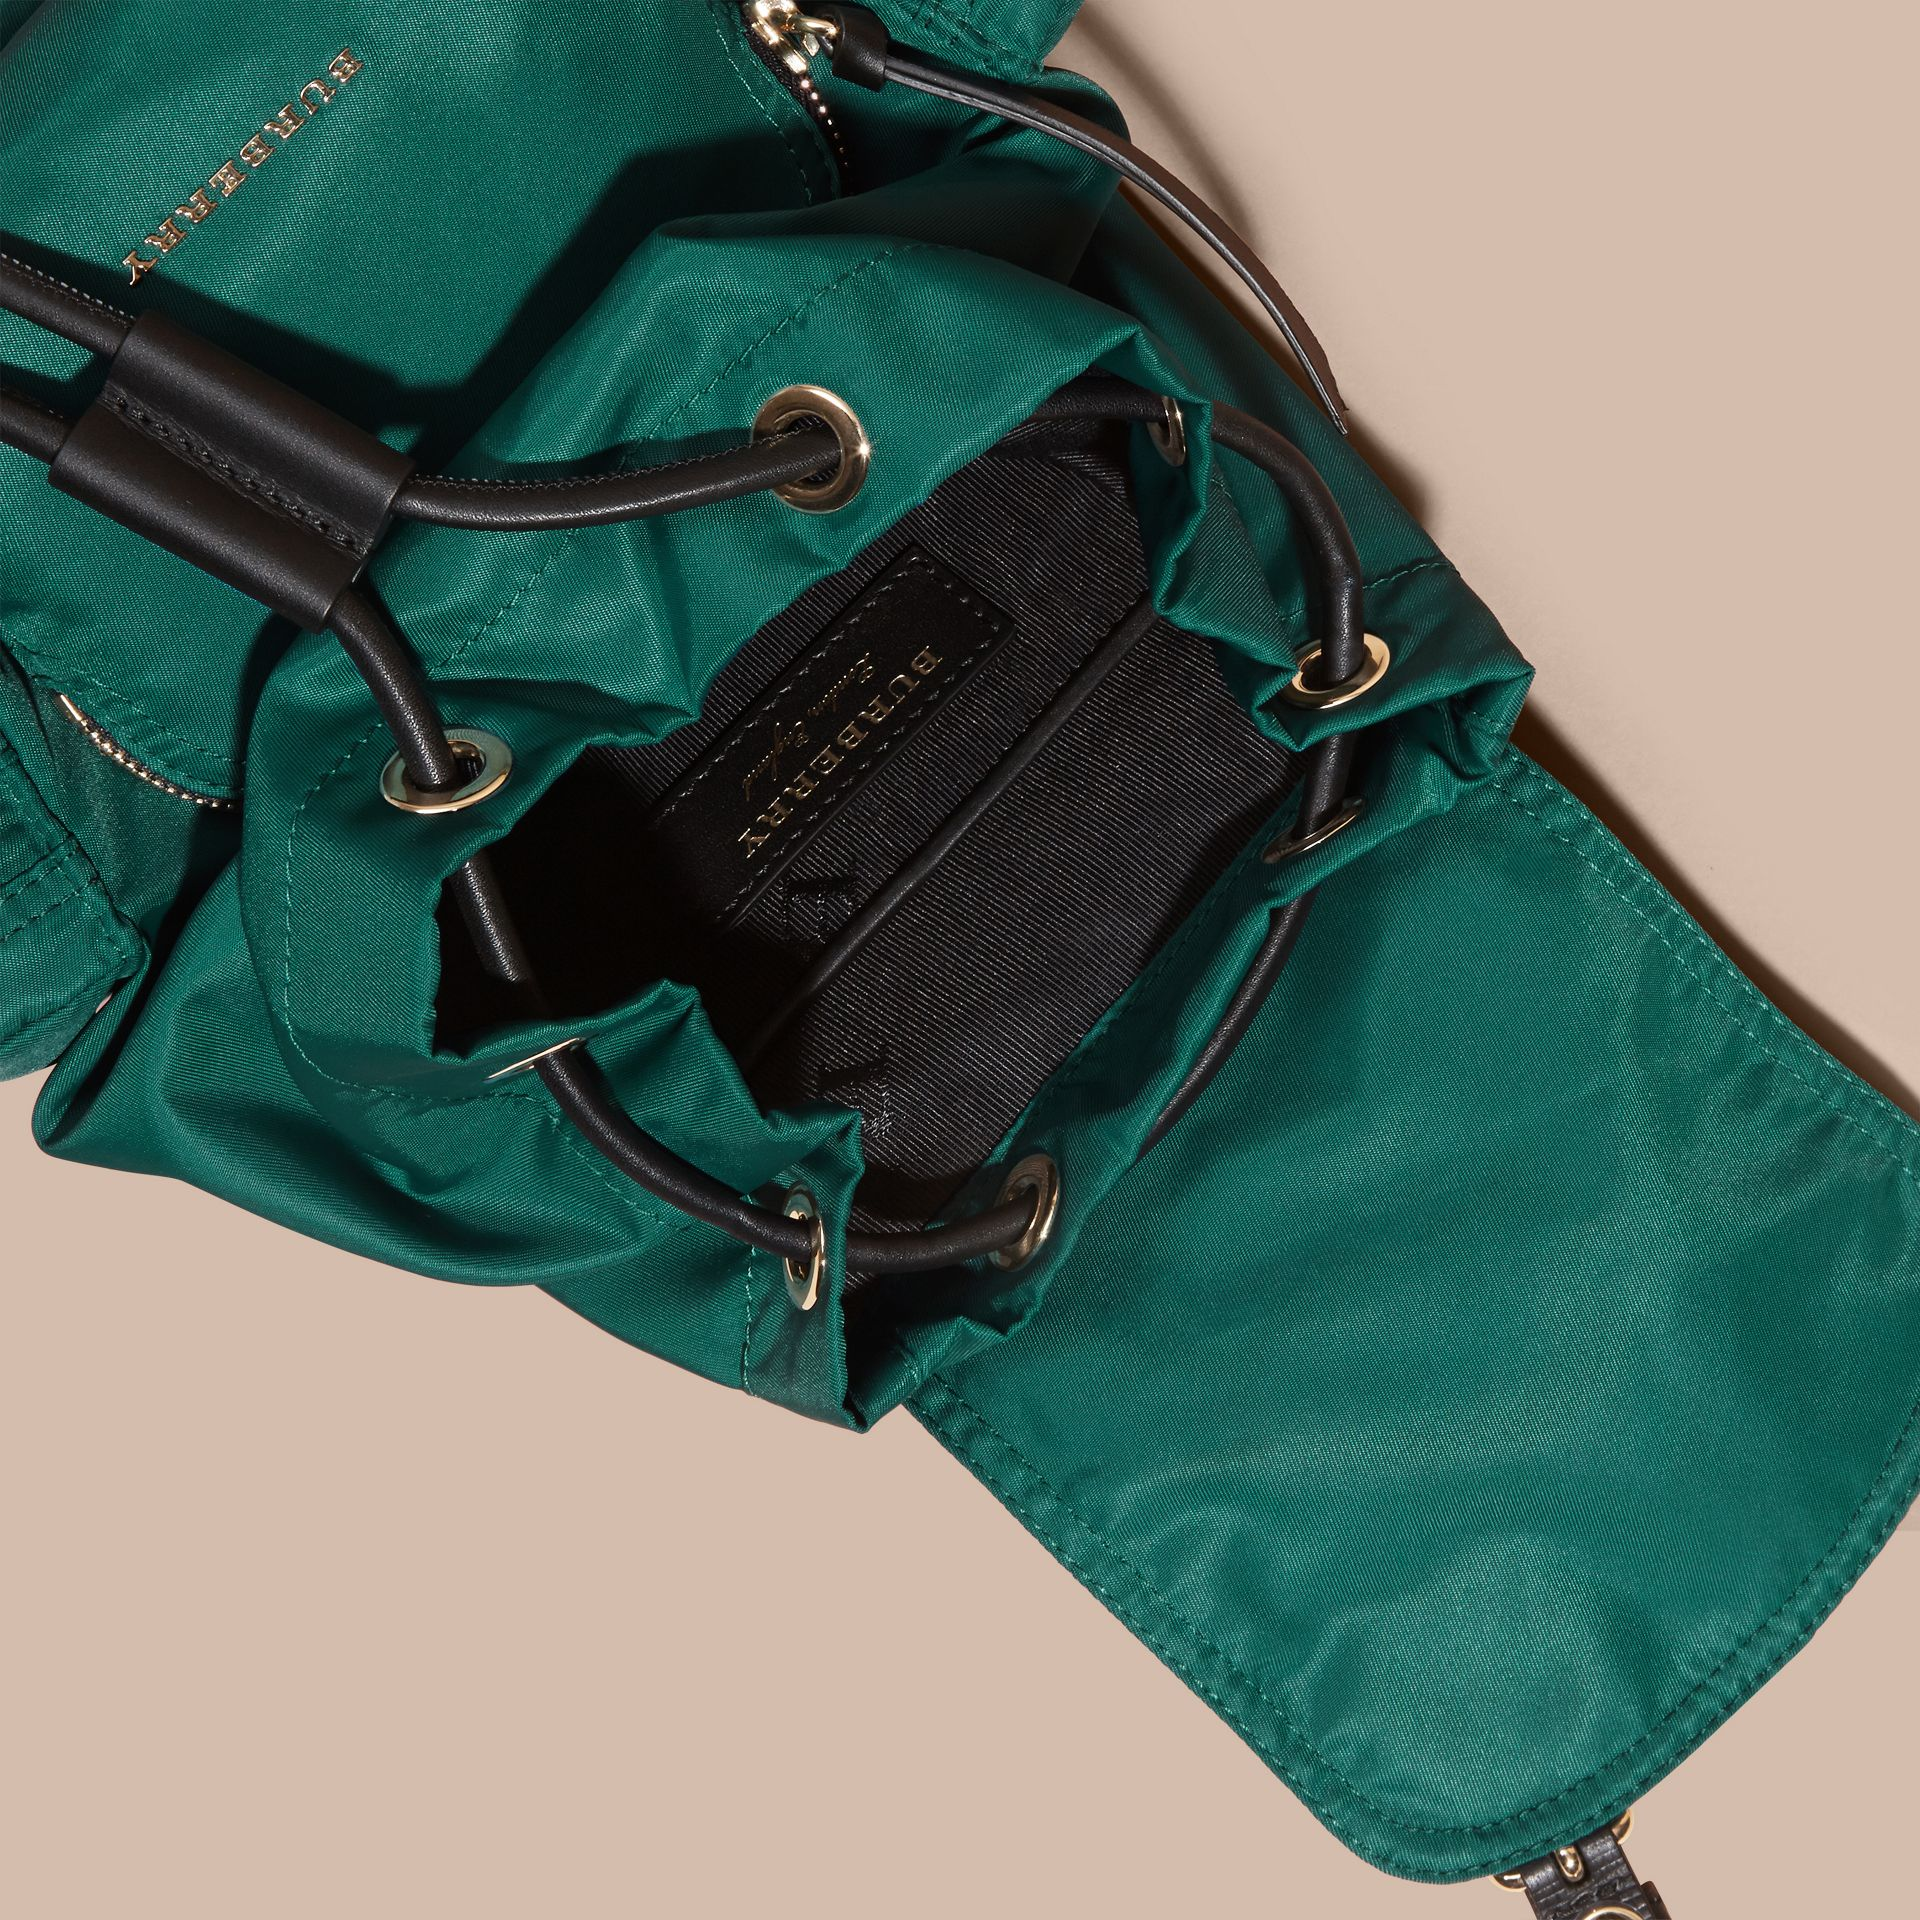 Pine green The Small Rucksack in Technical Nylon and Leather Pine Green - gallery image 5